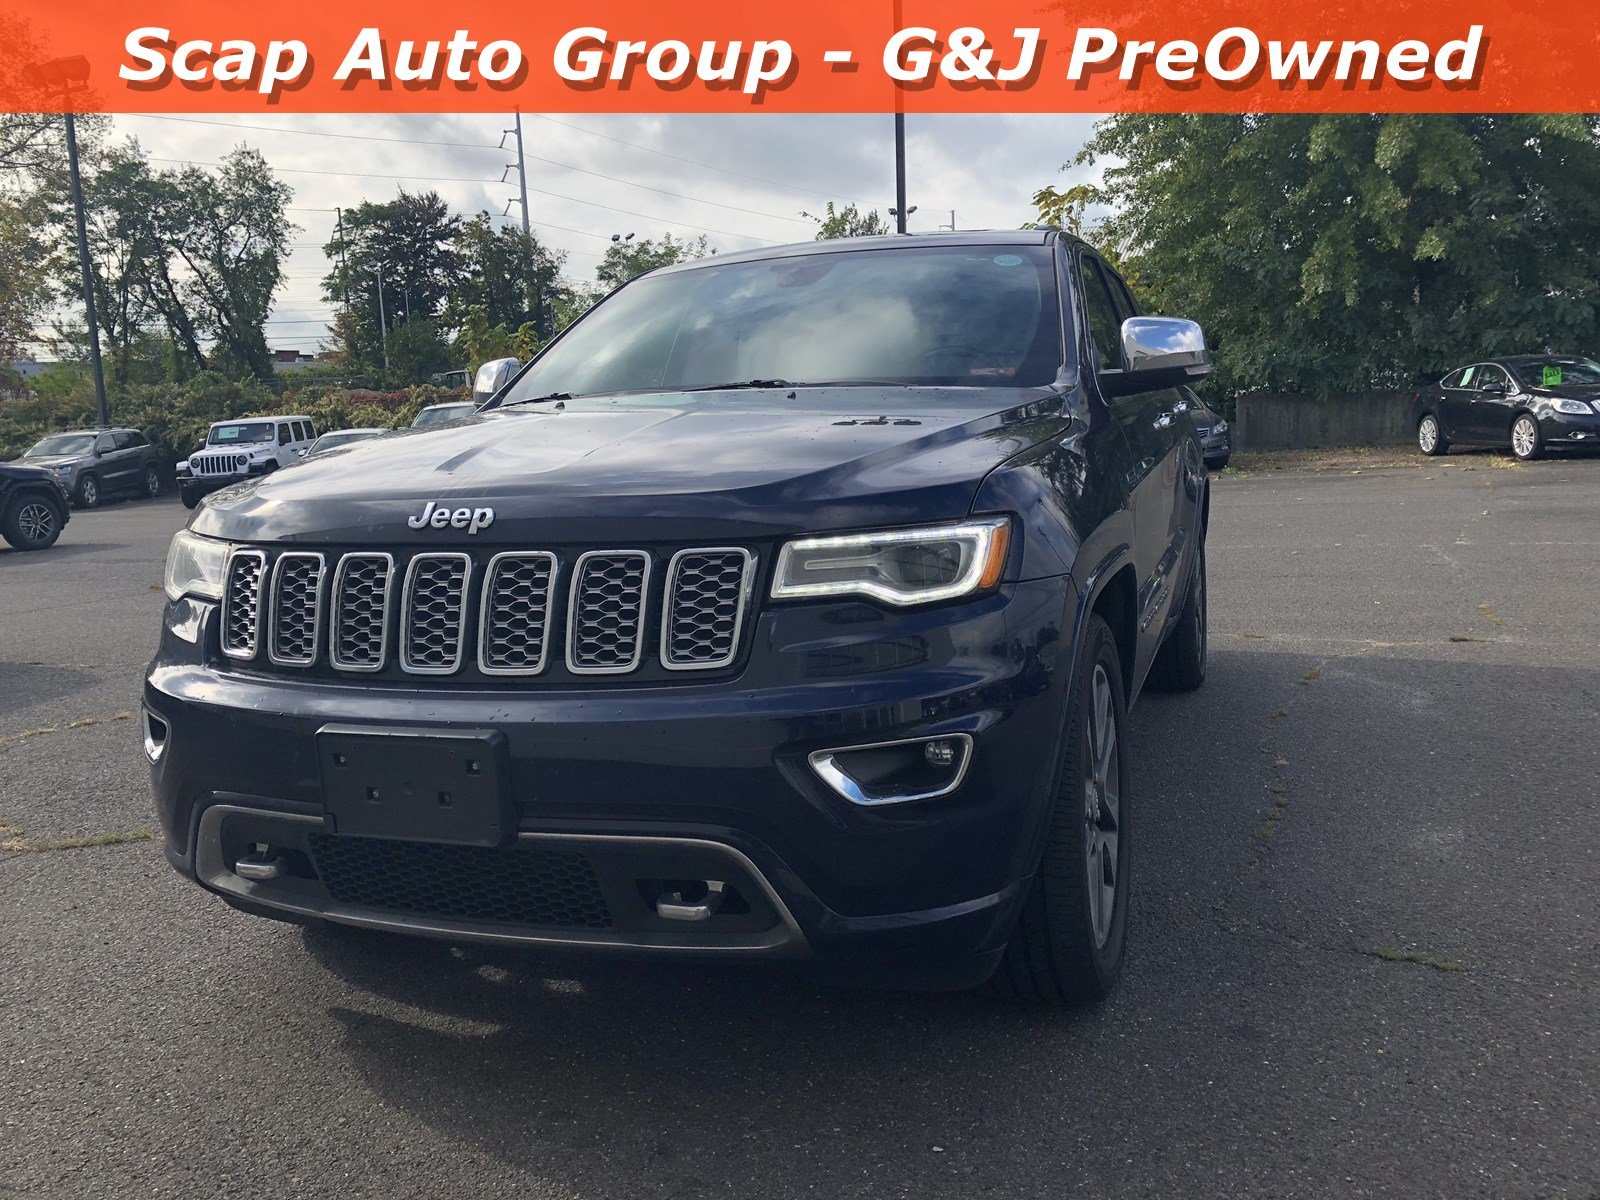 Used 2017 Jeep Grand Cherokee Overland Overland 4x4 for sale in Fairfield CT